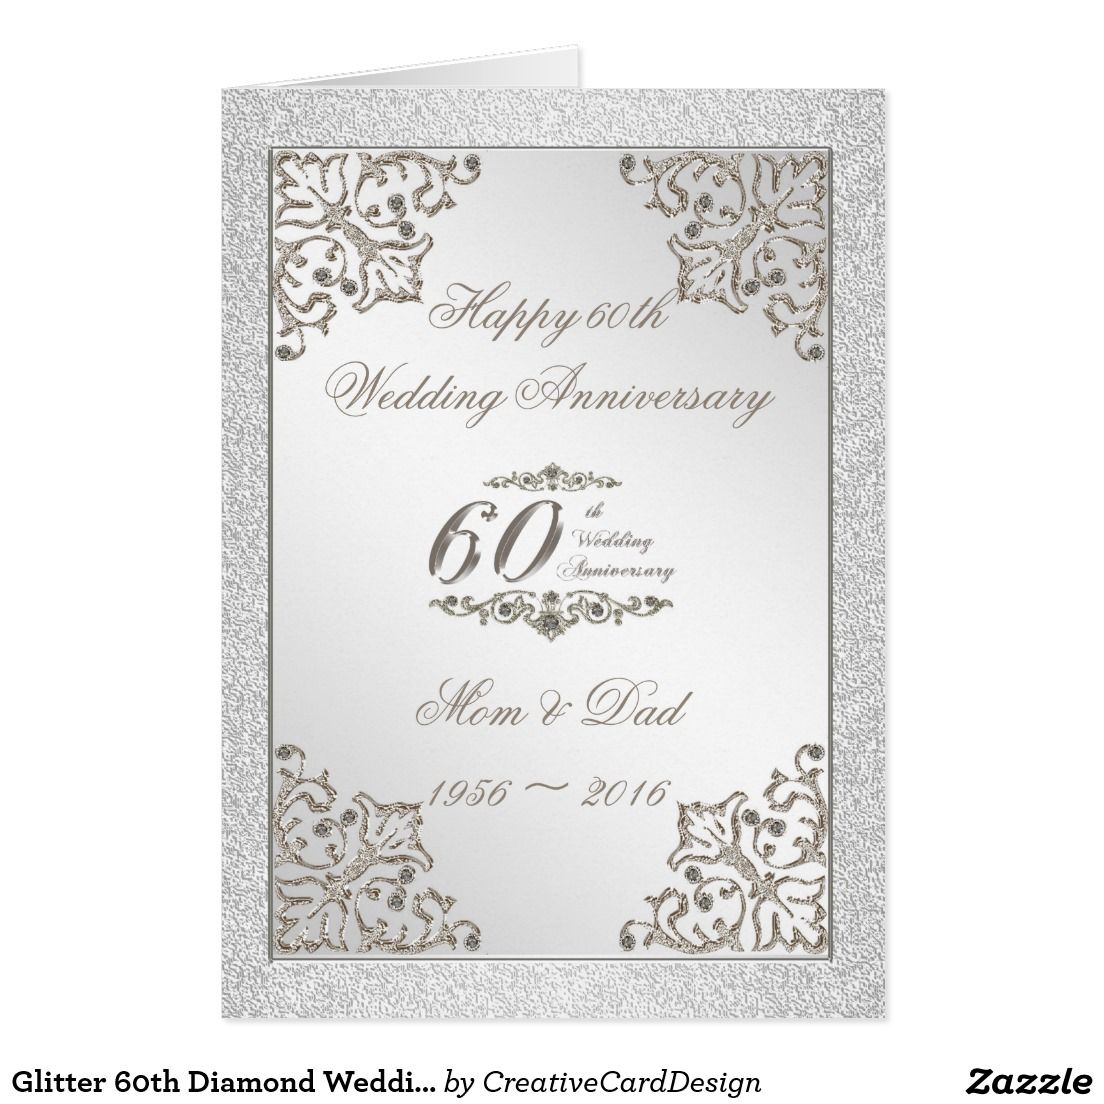 Glitter 60th diamond wedding anniversary card a creative card design glitter 60th diamond wedding anniversary card a creative card design featuring a platinum silver color and kristyandbryce Choice Image